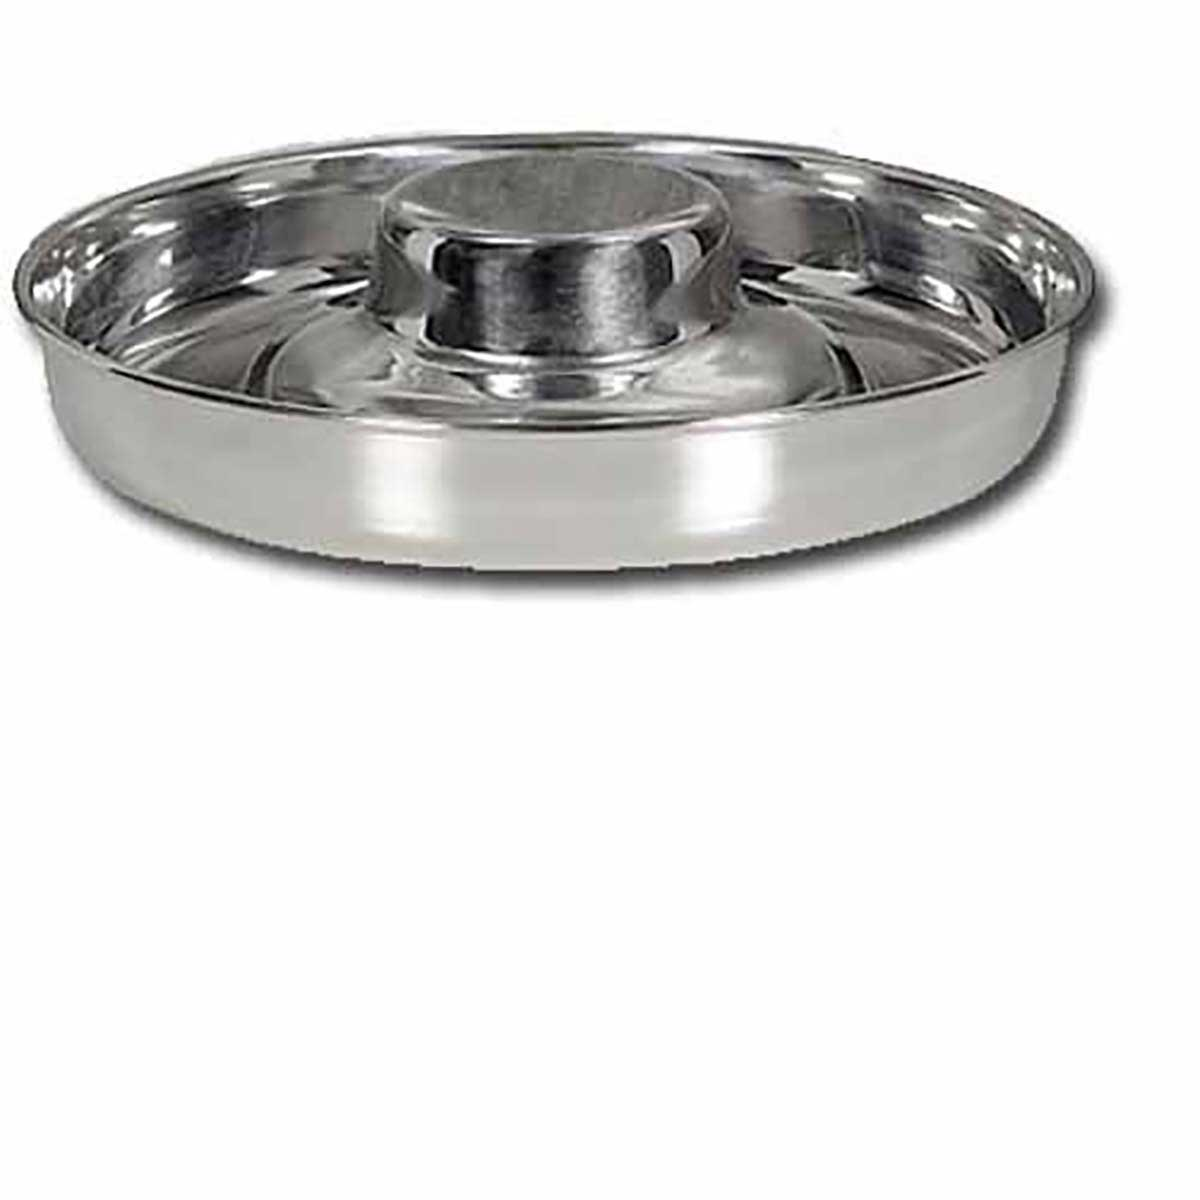 Indipets Raised Center Stainless Steel Puppy Feeding Dish Large 15 inches